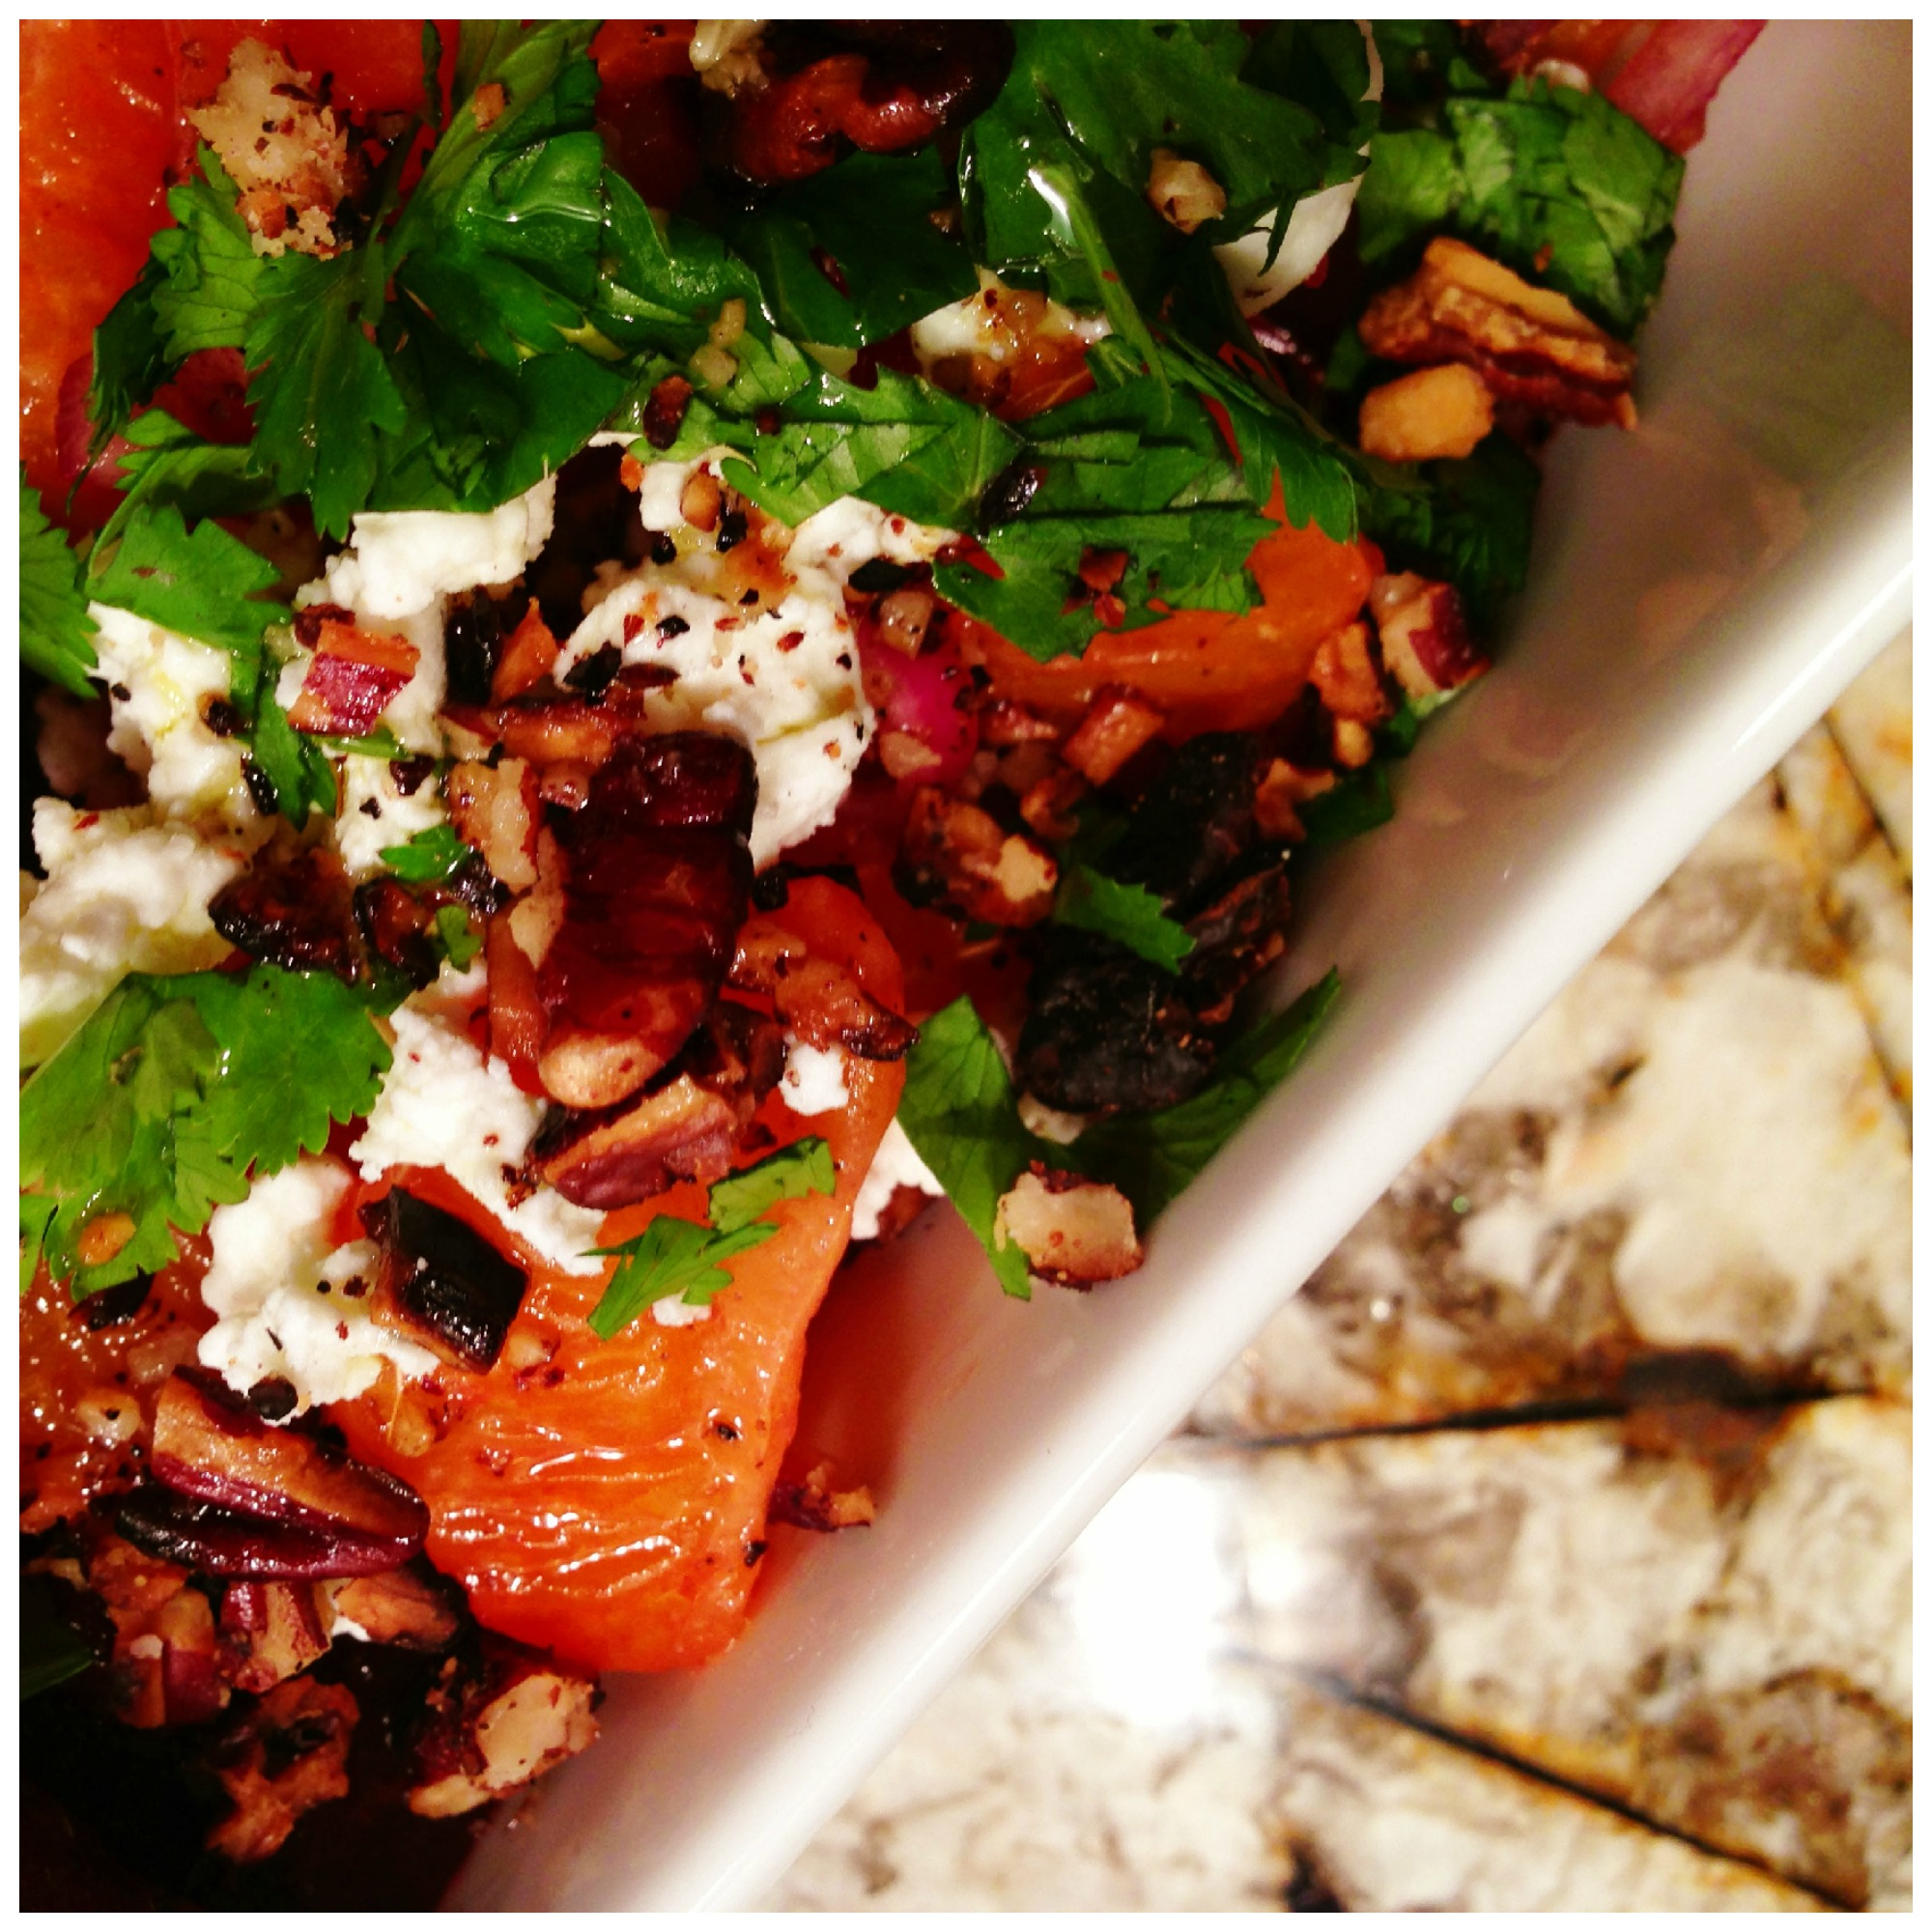 Tangy & Sweet Beet Salad - The Fiery Redhead Blog